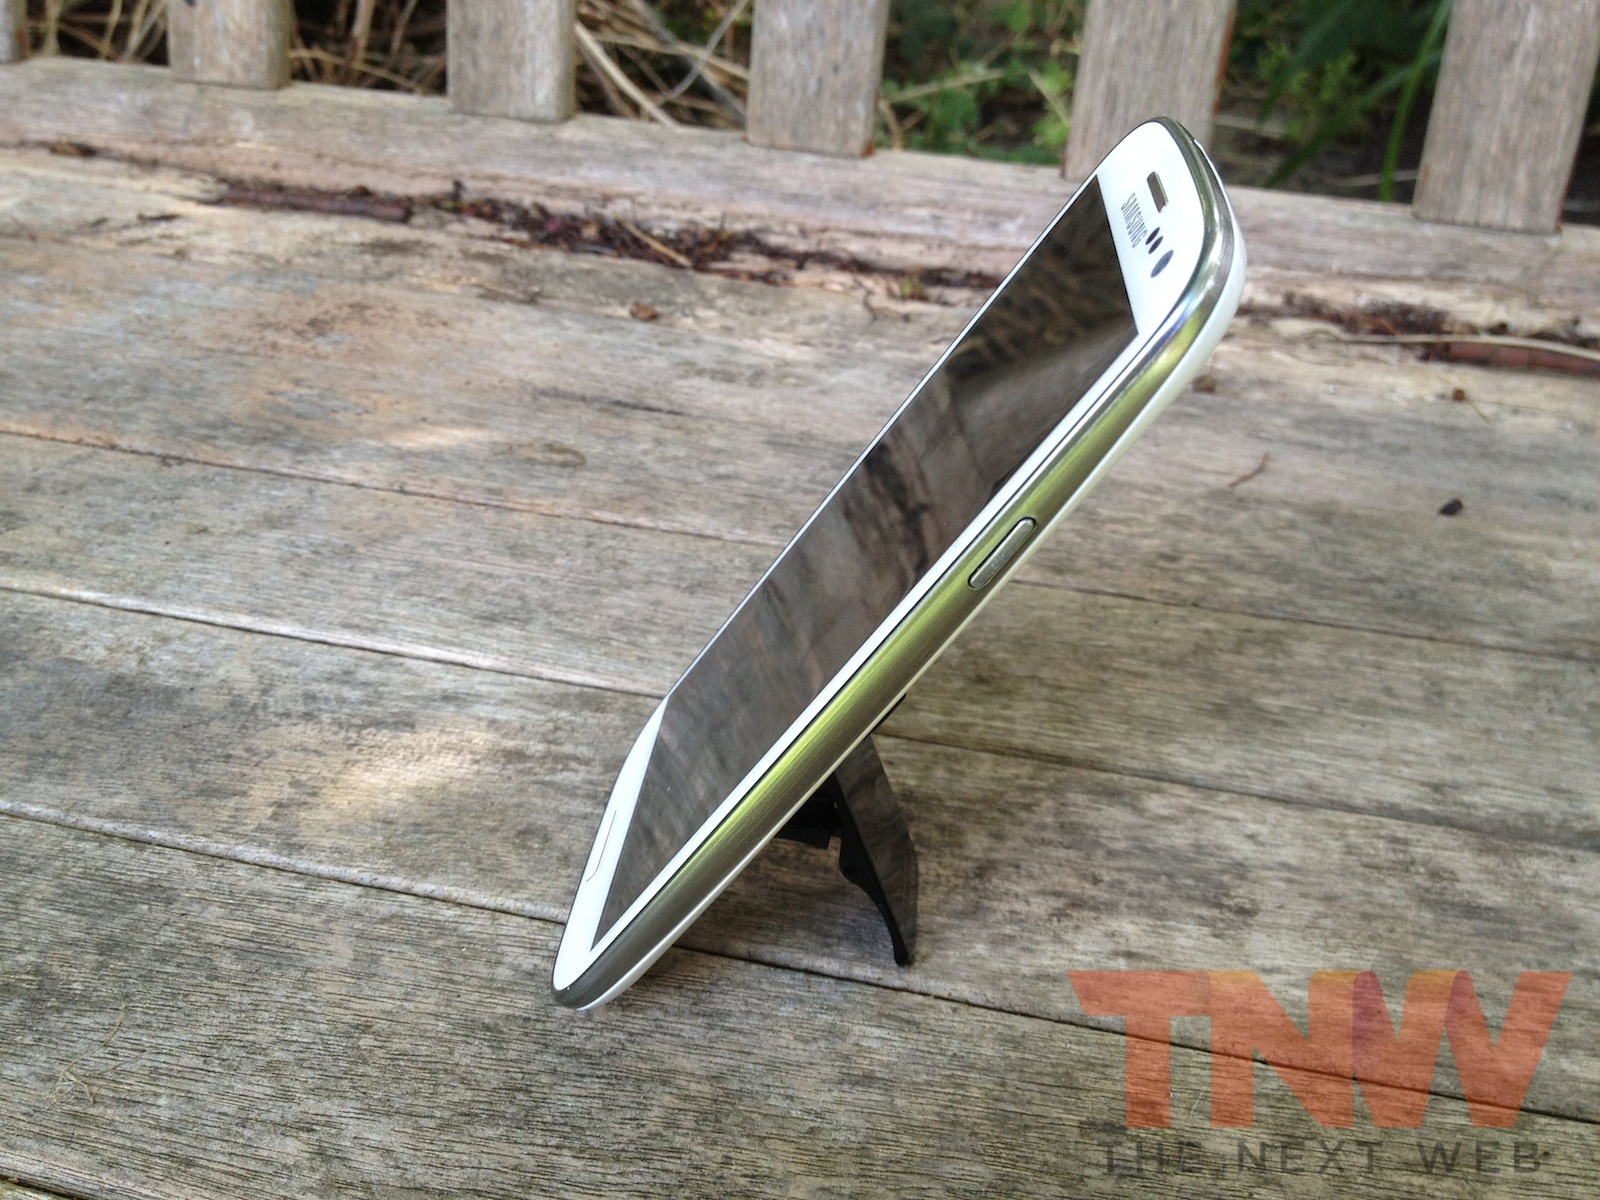 TNW Review: The Flygrip helps you get to grips with your portable gadgets…quite literally